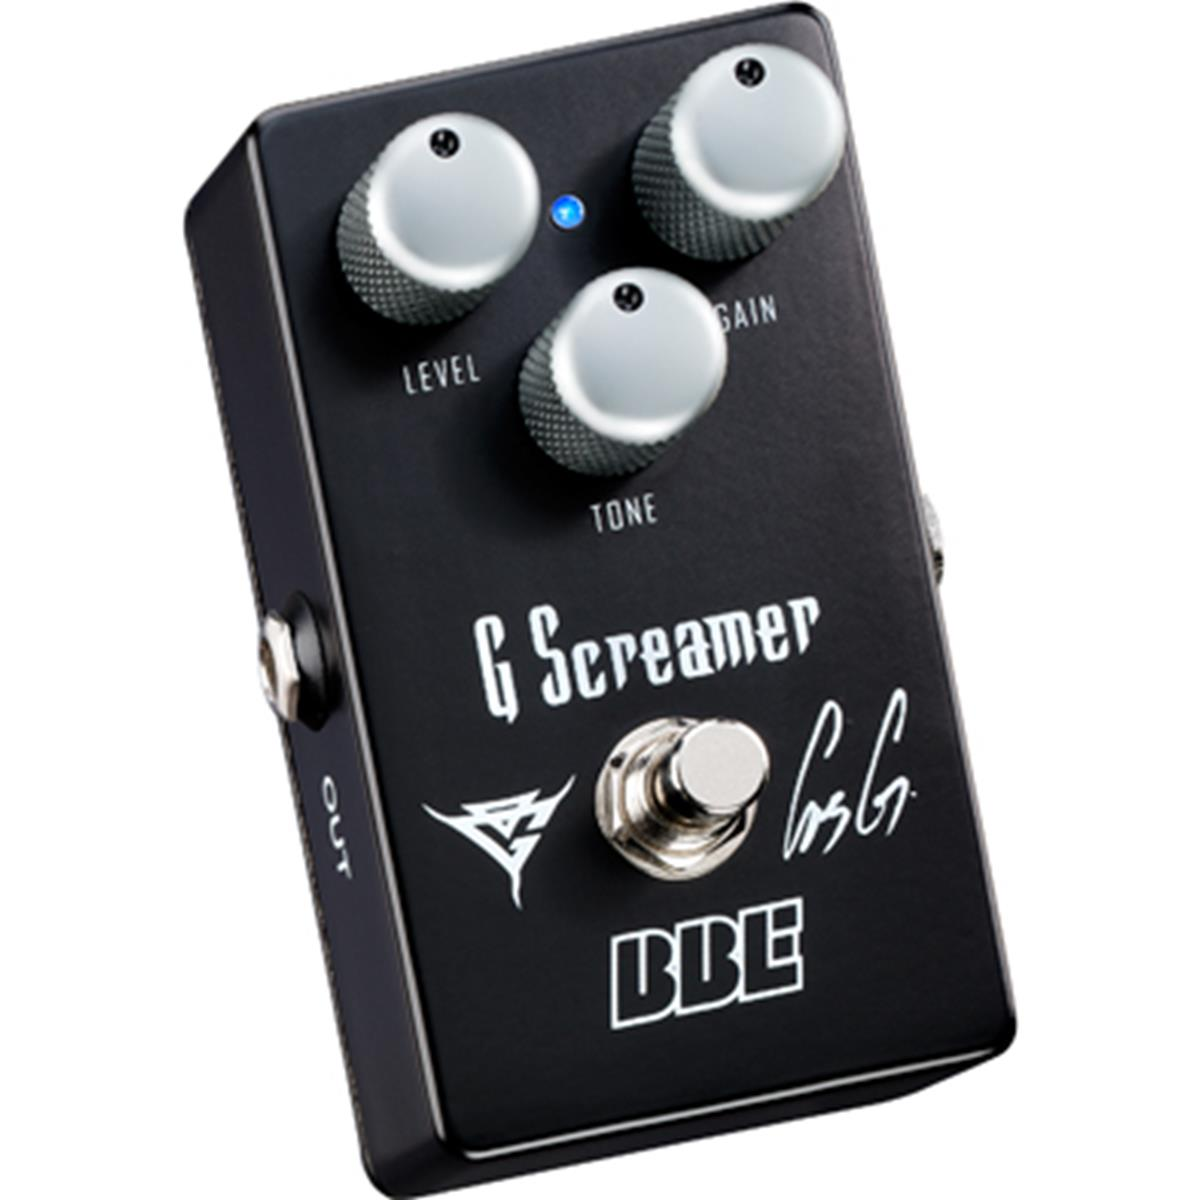 BBE G SCREAMER OG 1 GUS G